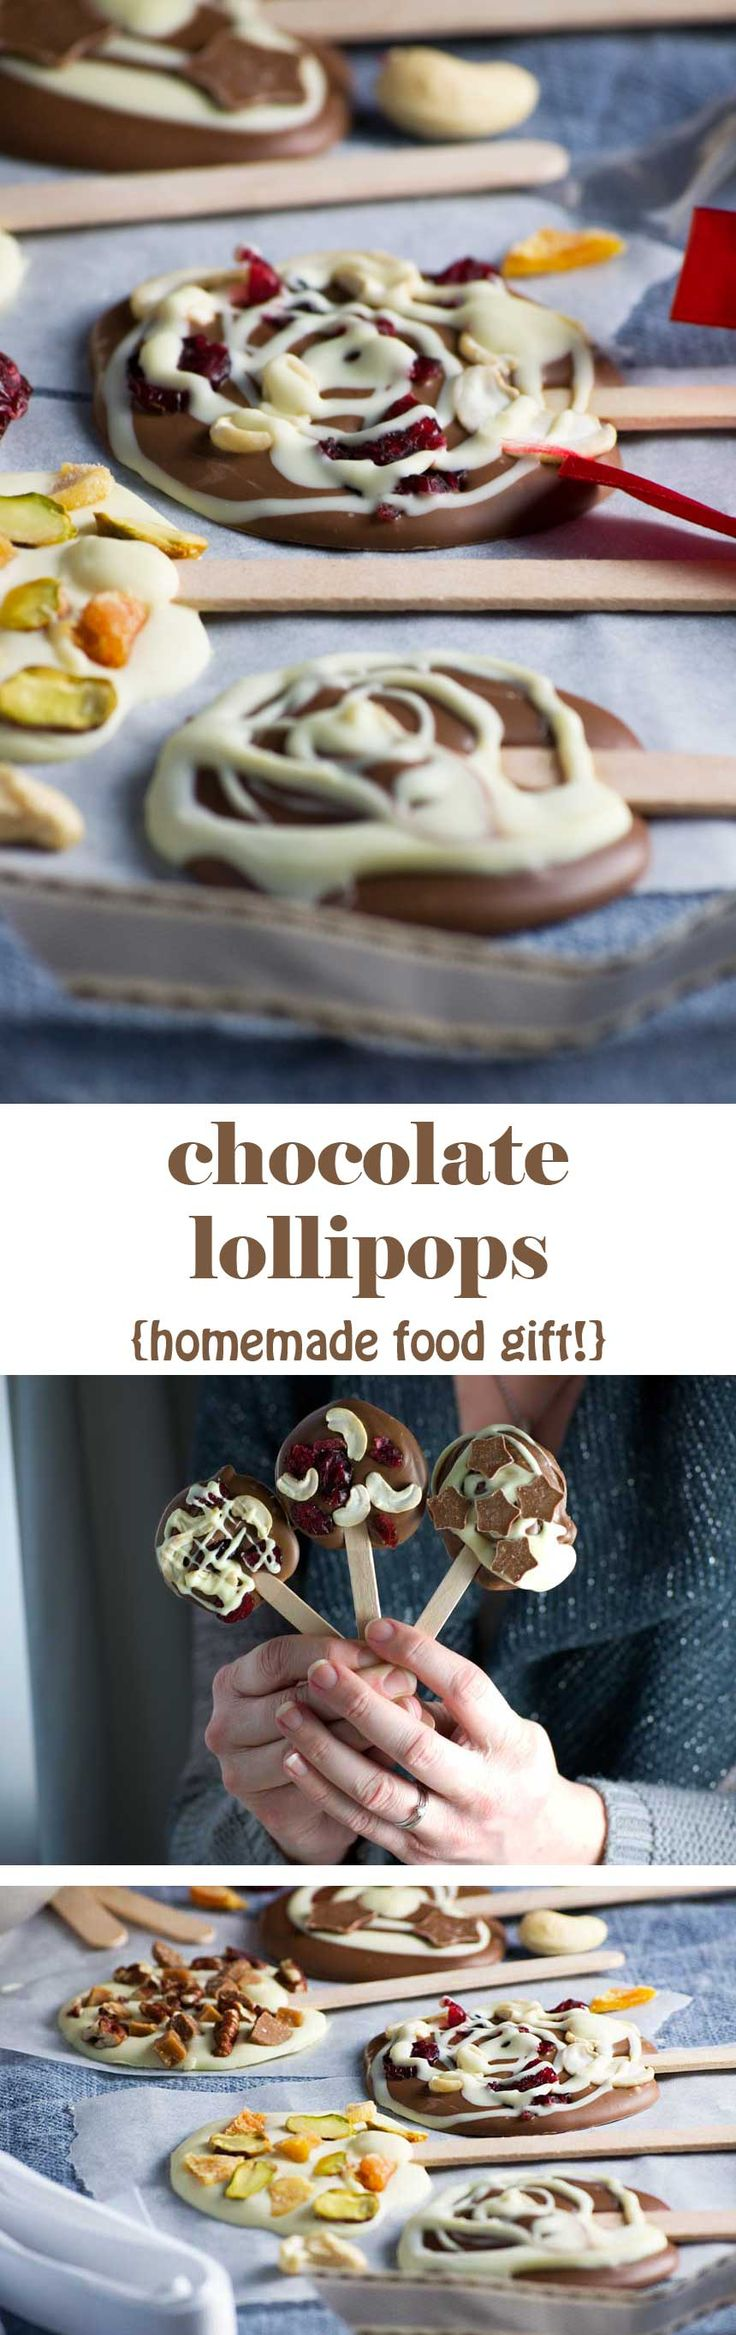 Chocolate lollipops - a perfect last-minute food gift